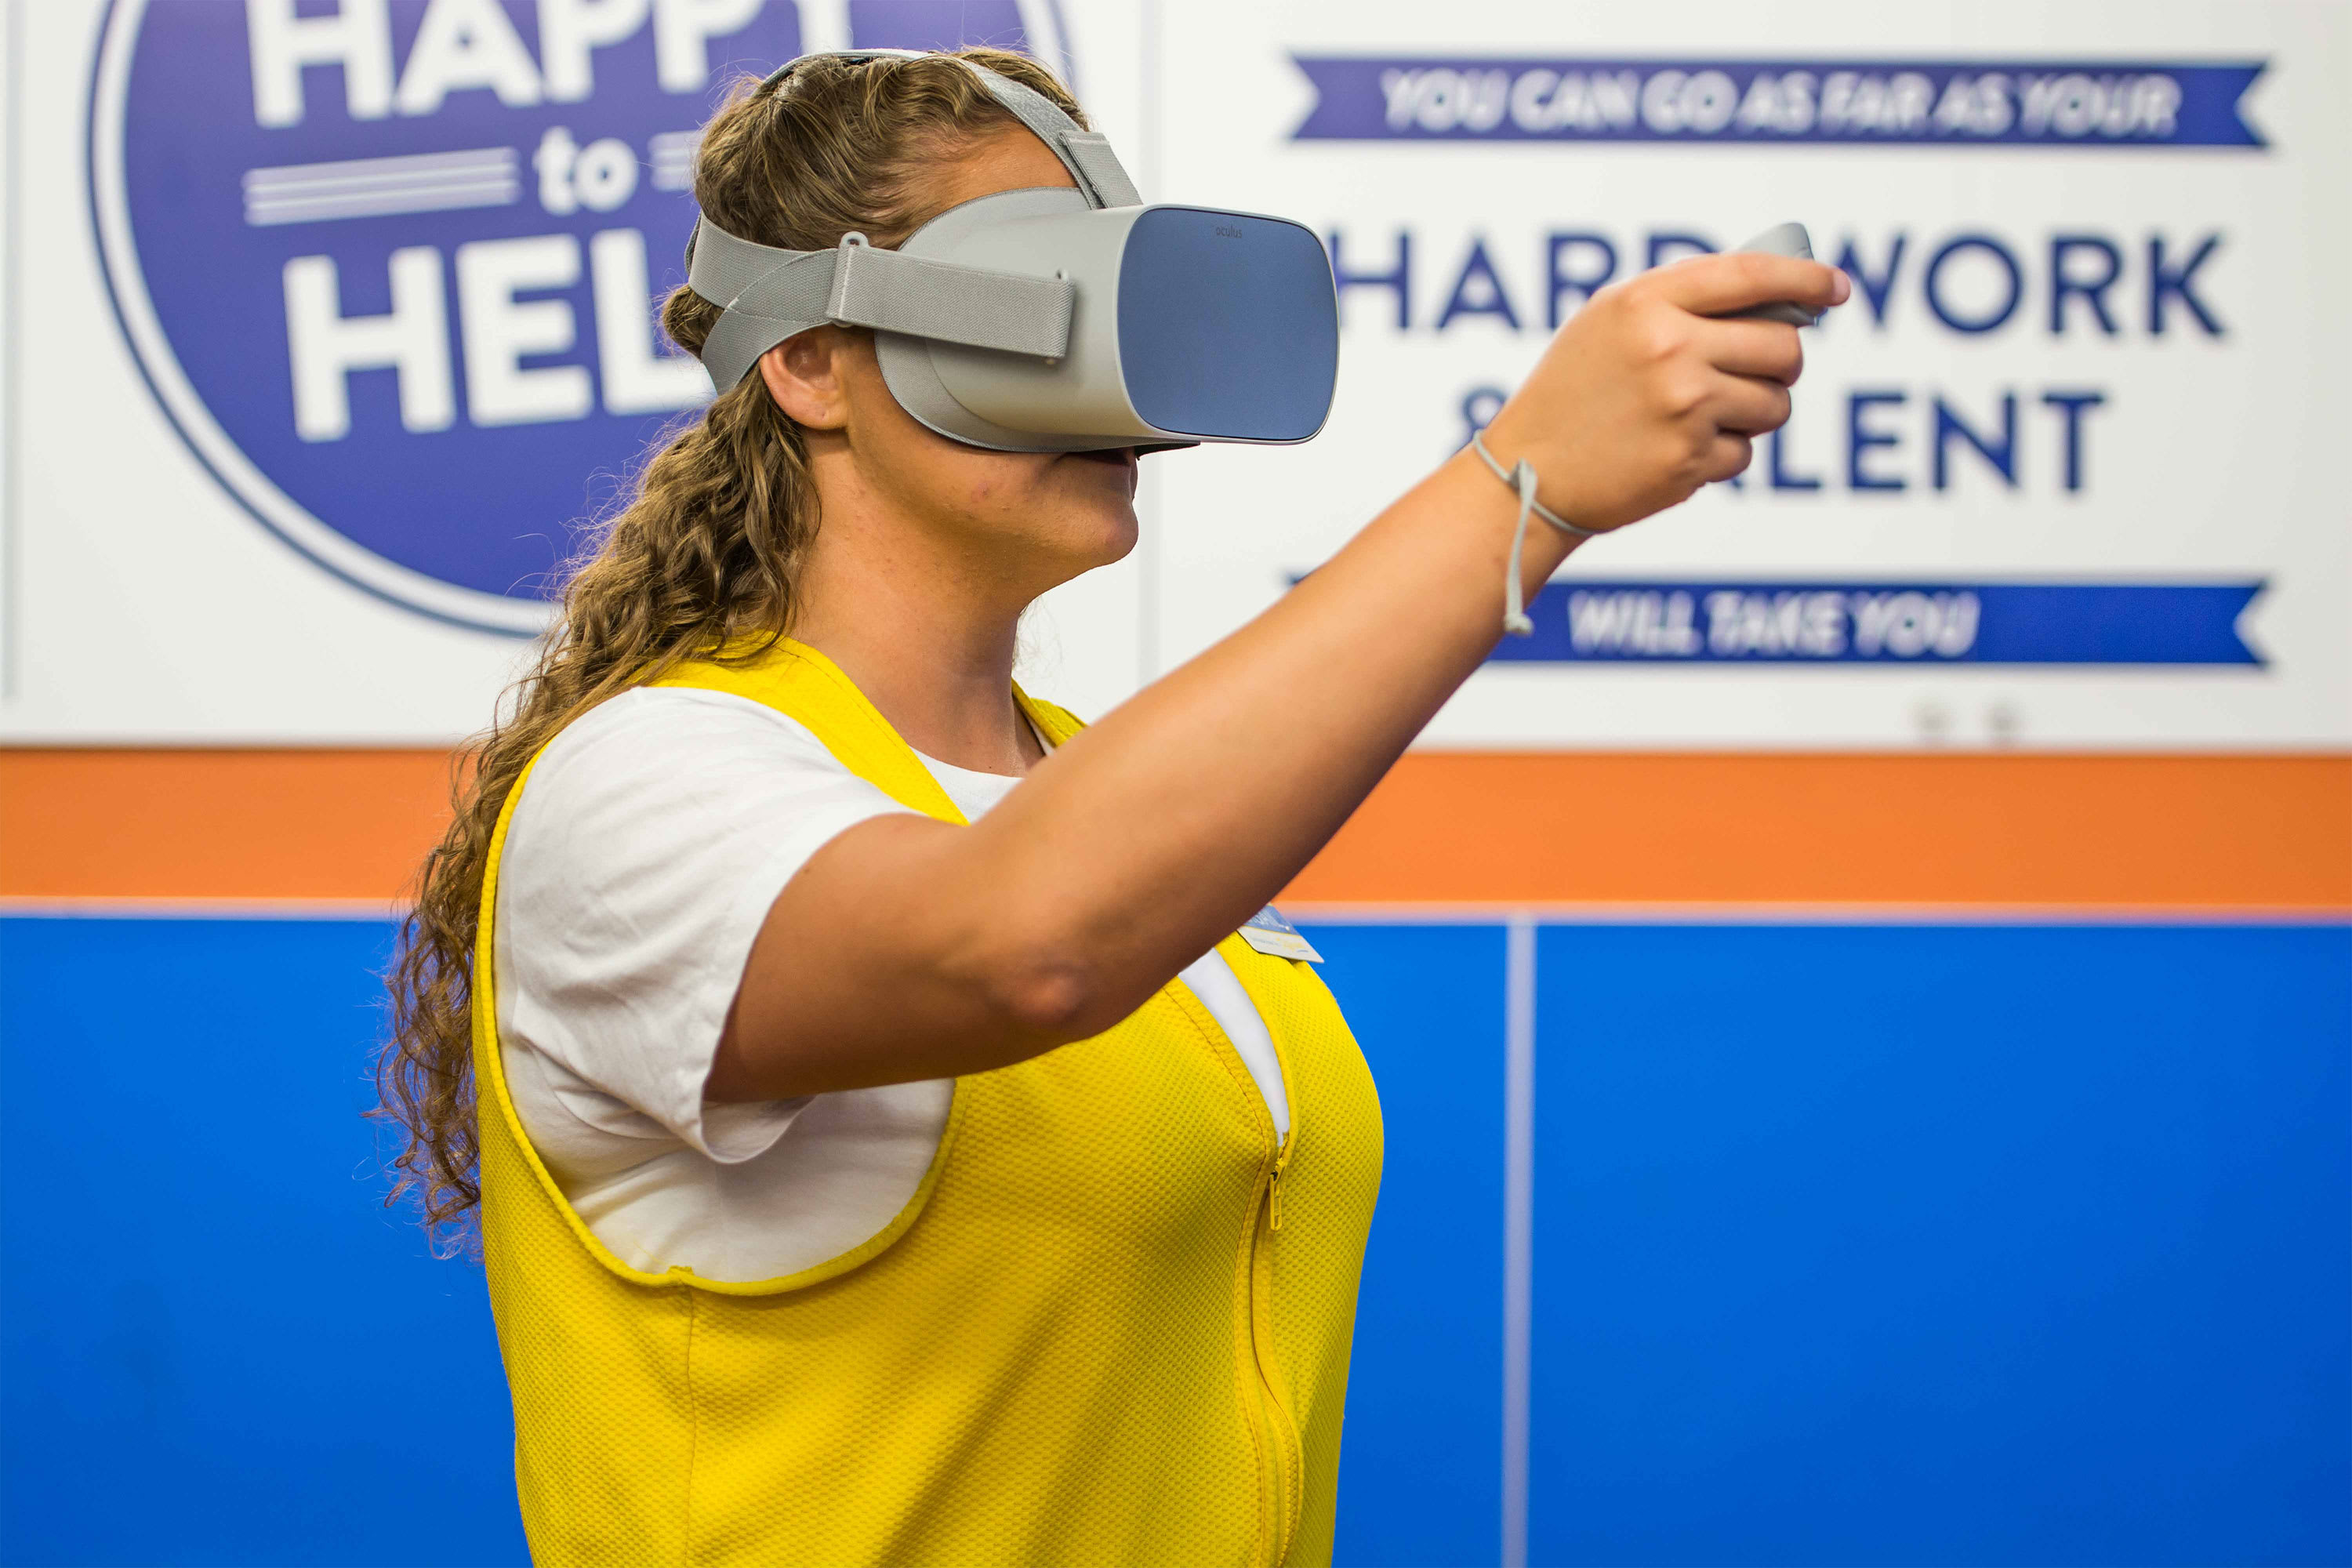 Op-ed: The 'Experience Economy' is dead driving a boom in virtual reality